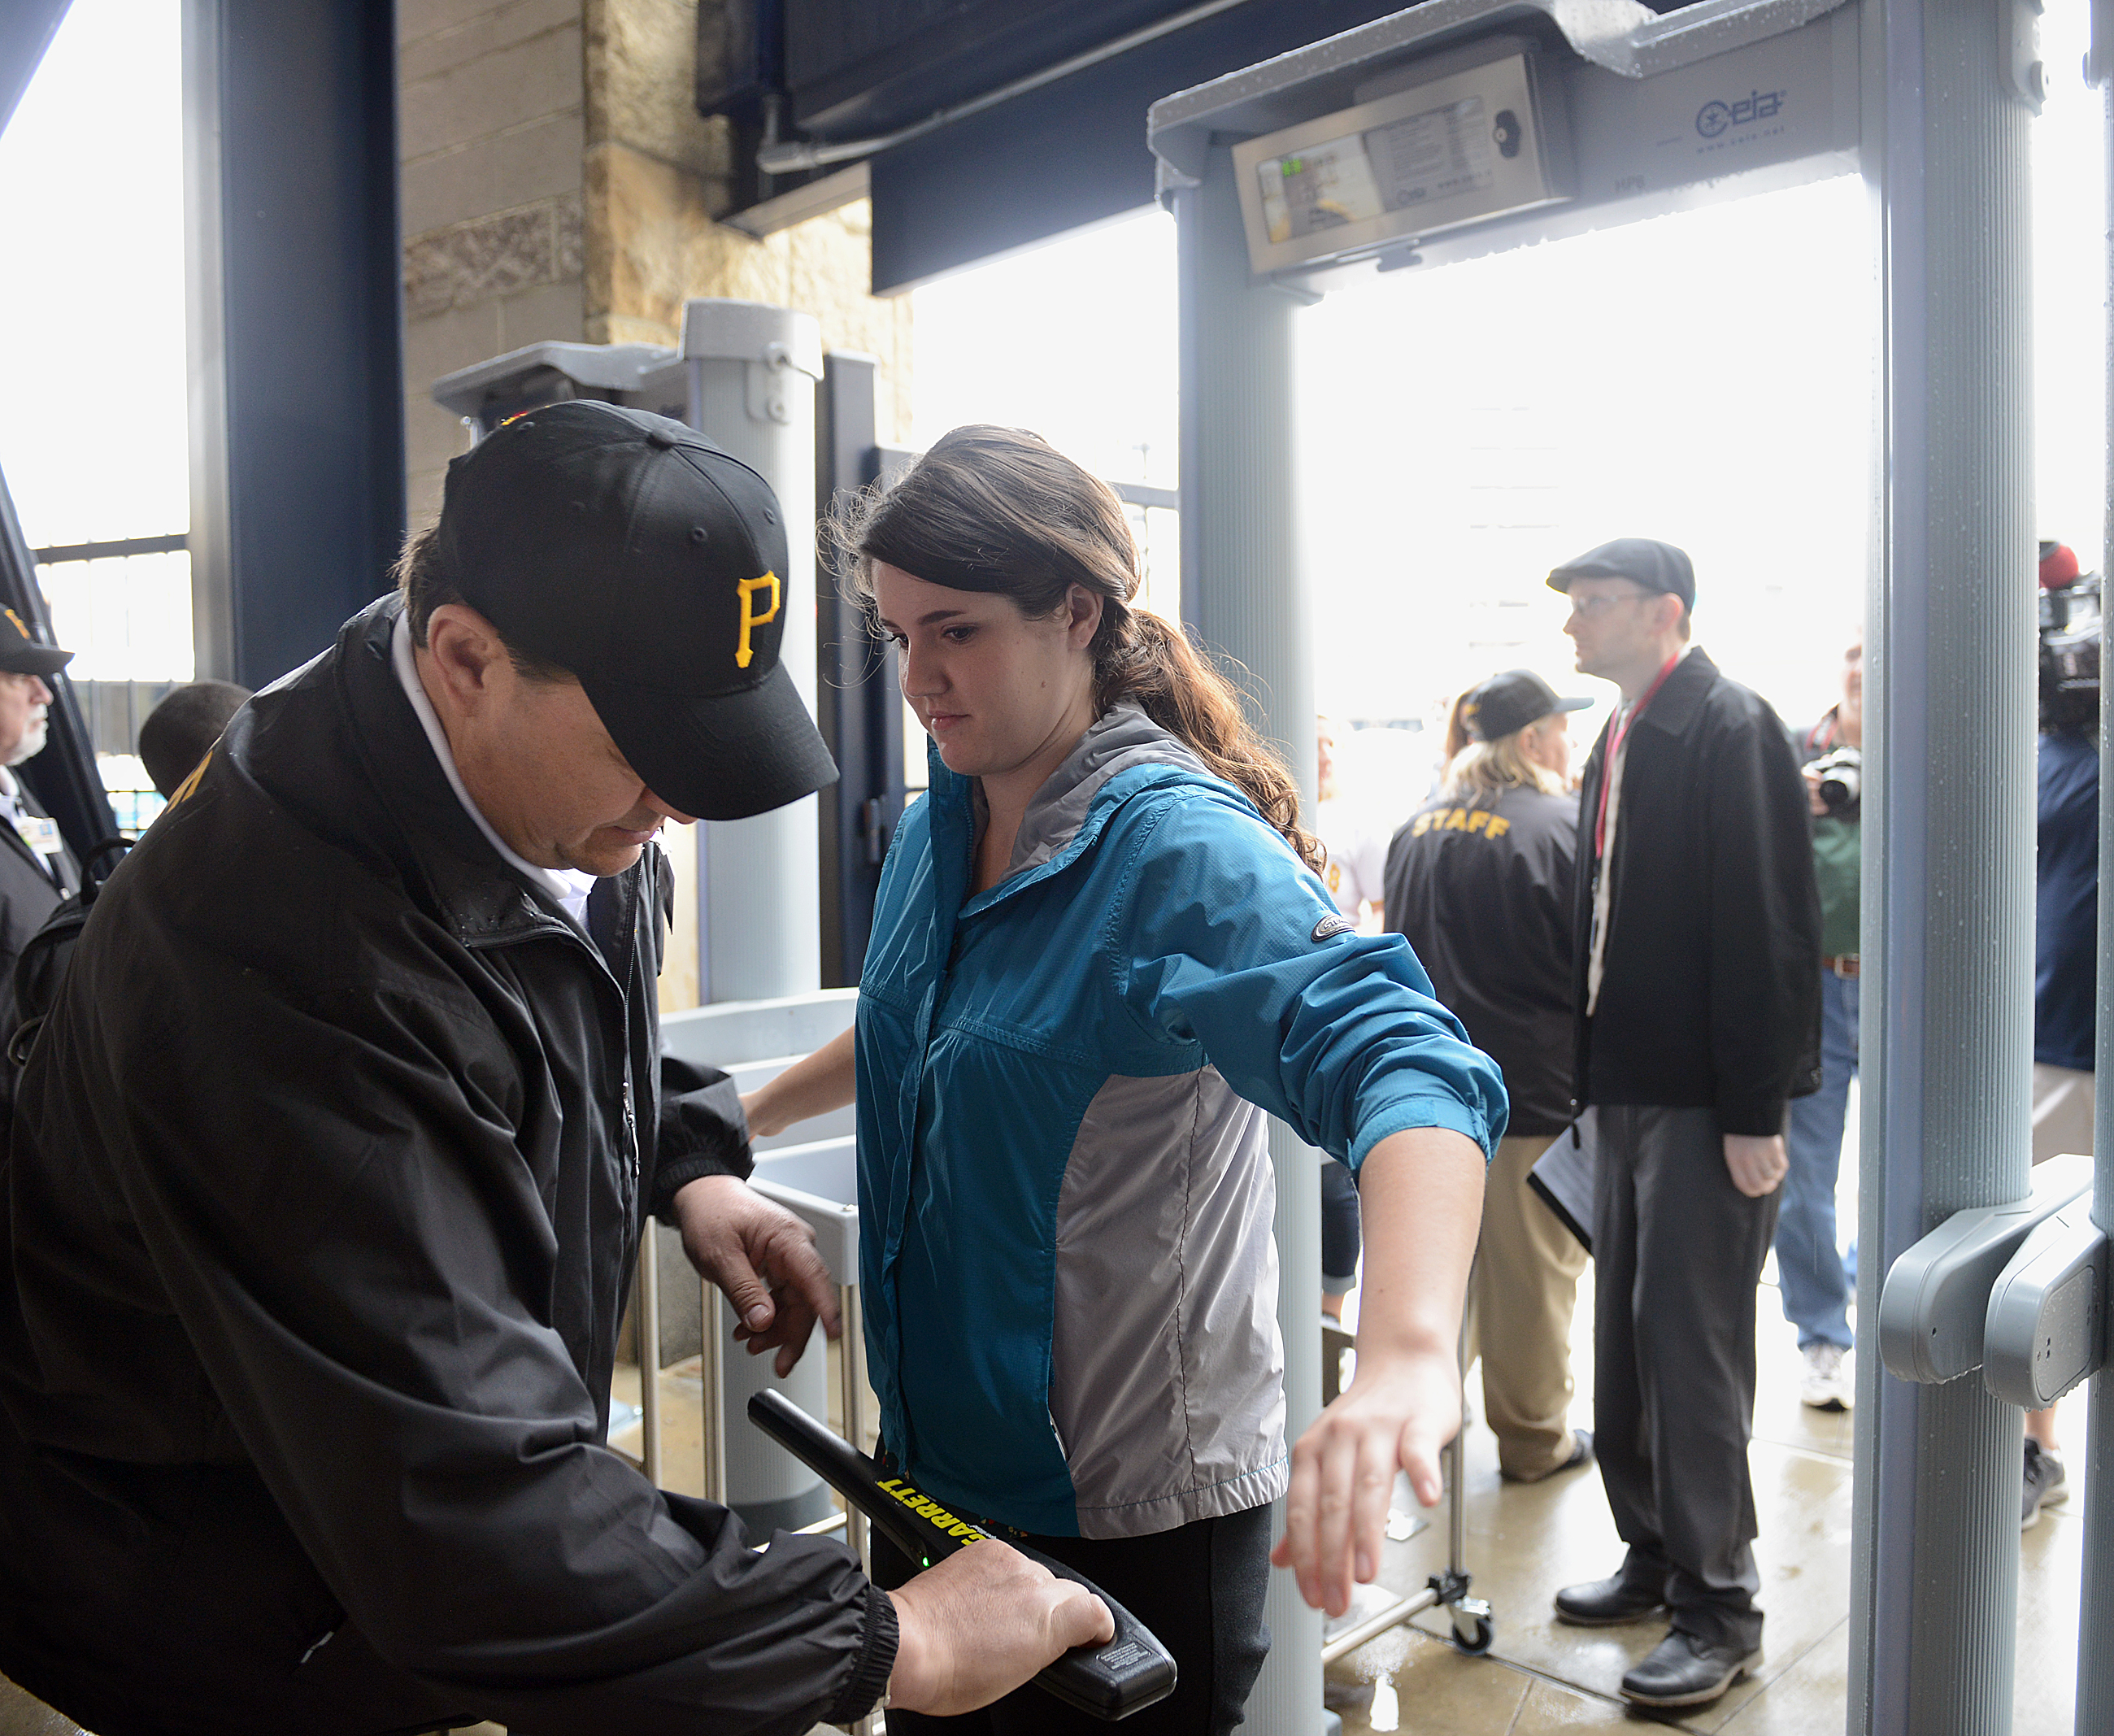 20150409radPNCParkLocal02-1 A visitor for the preseason tour at PNC Park is swept with a magnetic wand after passing through the new metal detectors.